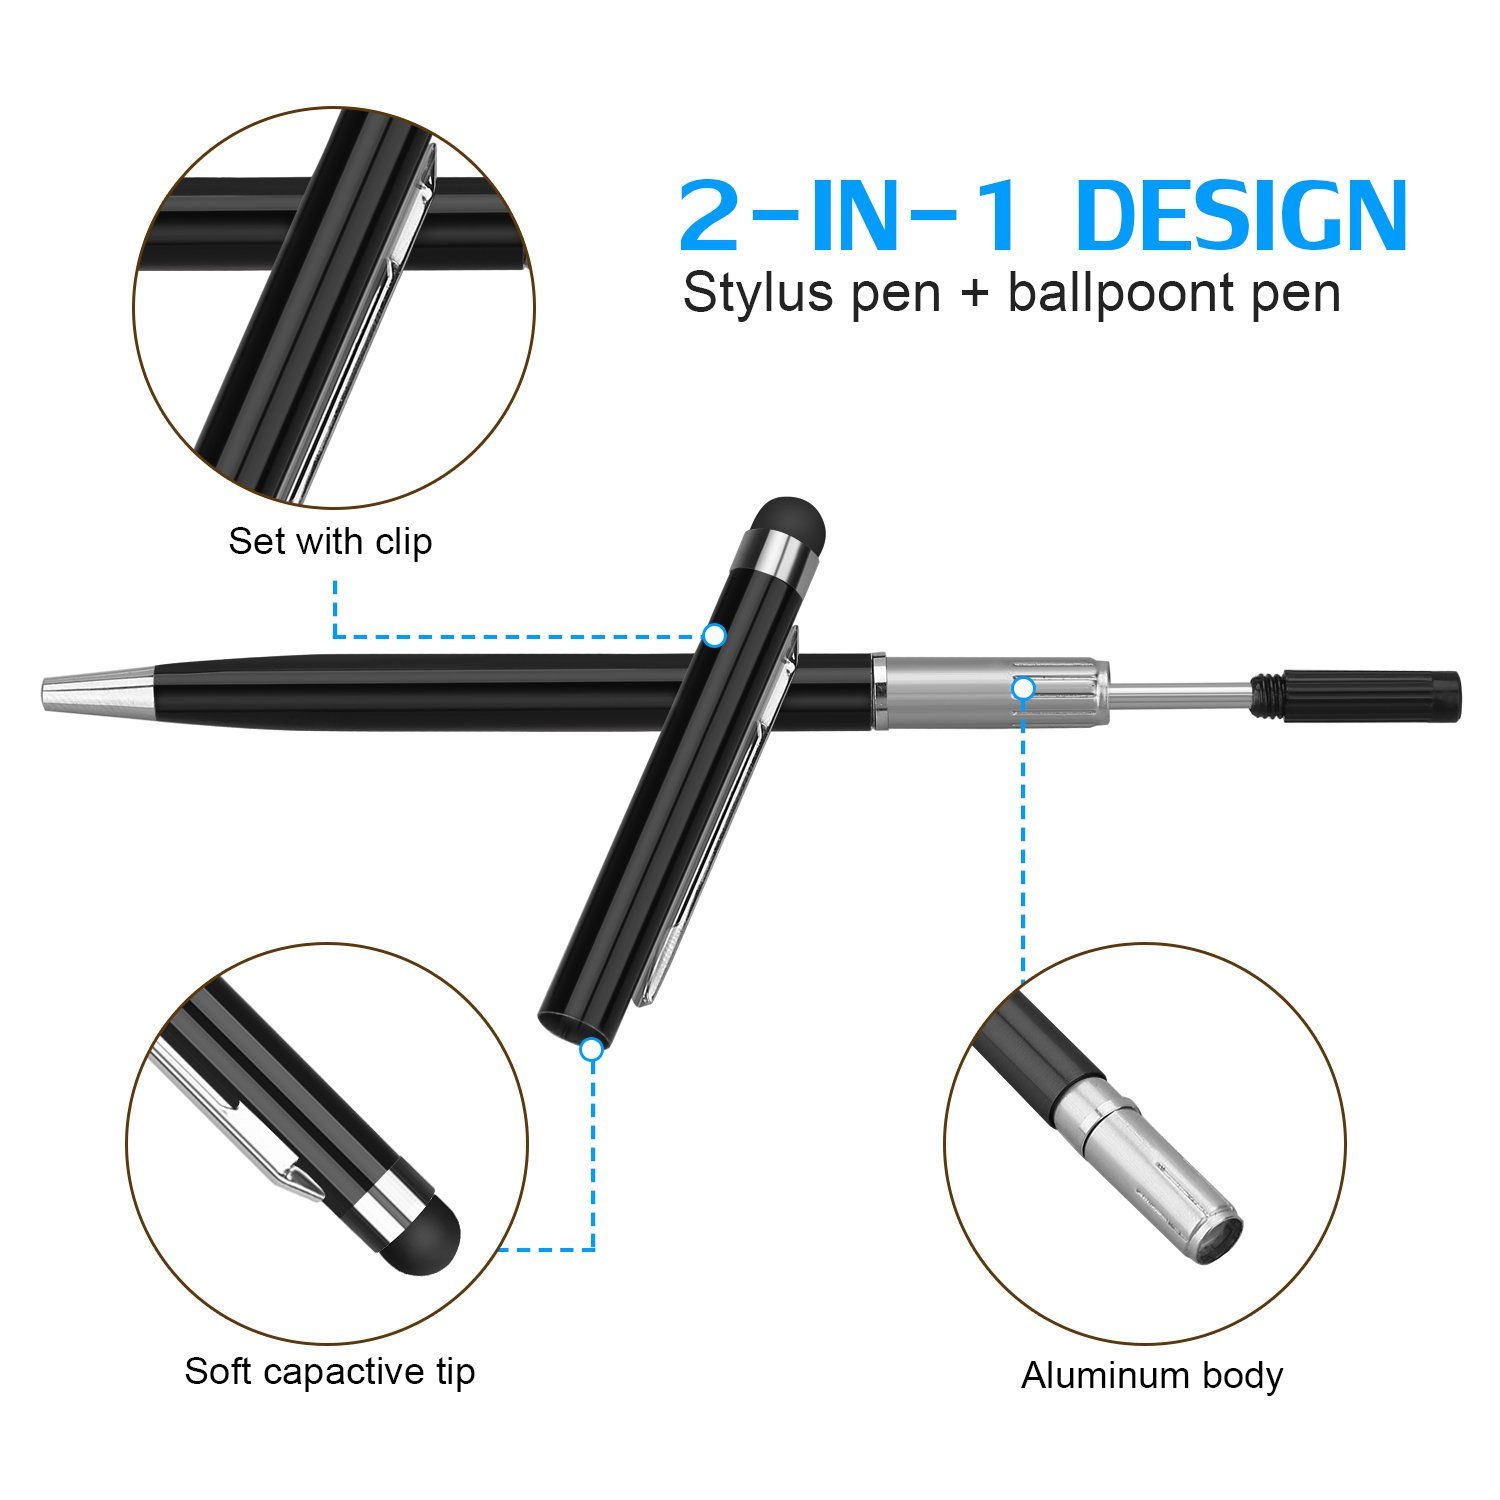 Stylus Pen,Proking 2 in 1 Capacitive Stylus Ballpoint Pen for Universal Touch Screens Devices Stylus Pens for iPad,iPhone,Kindle,Samsung,HTC,Tablets (Black,White)